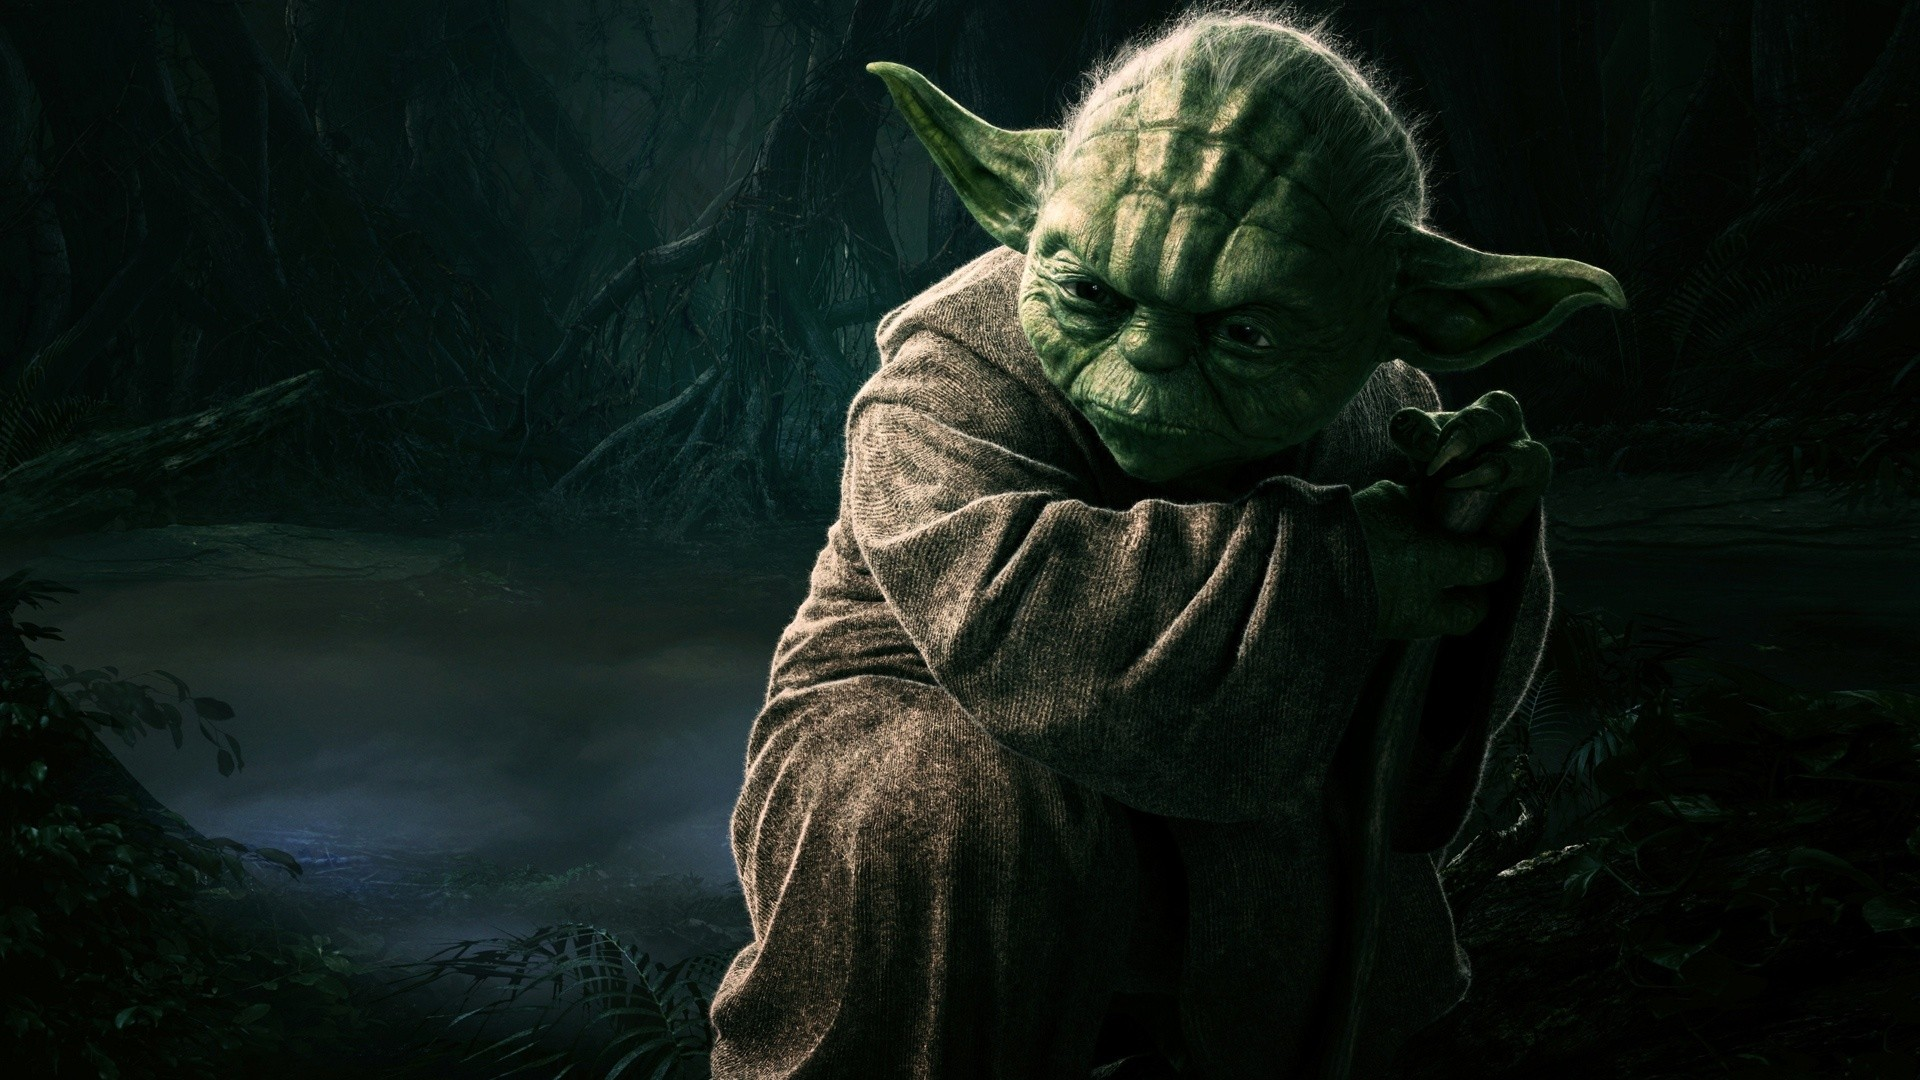 Star Wars Yoda Wallpaper